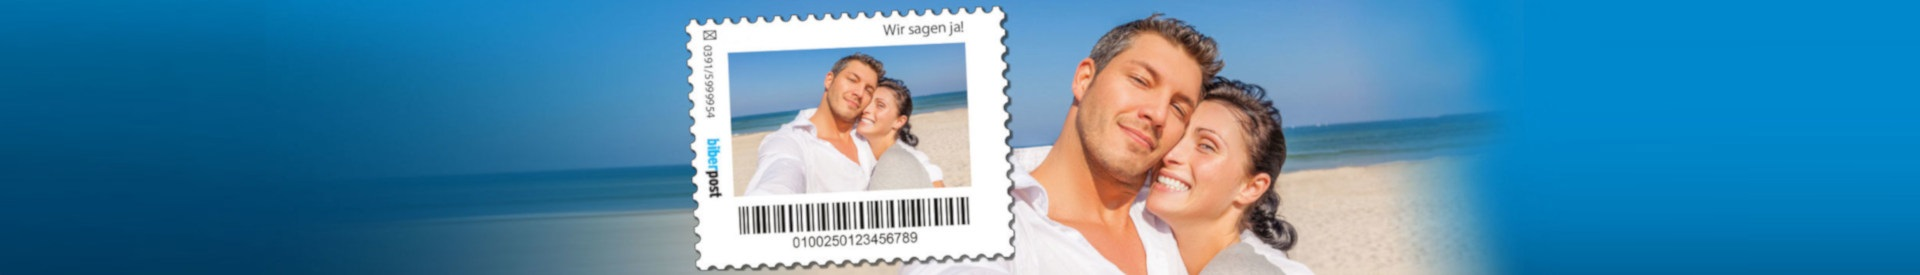 Privatkunden-individuelle-biber post-briefmarken